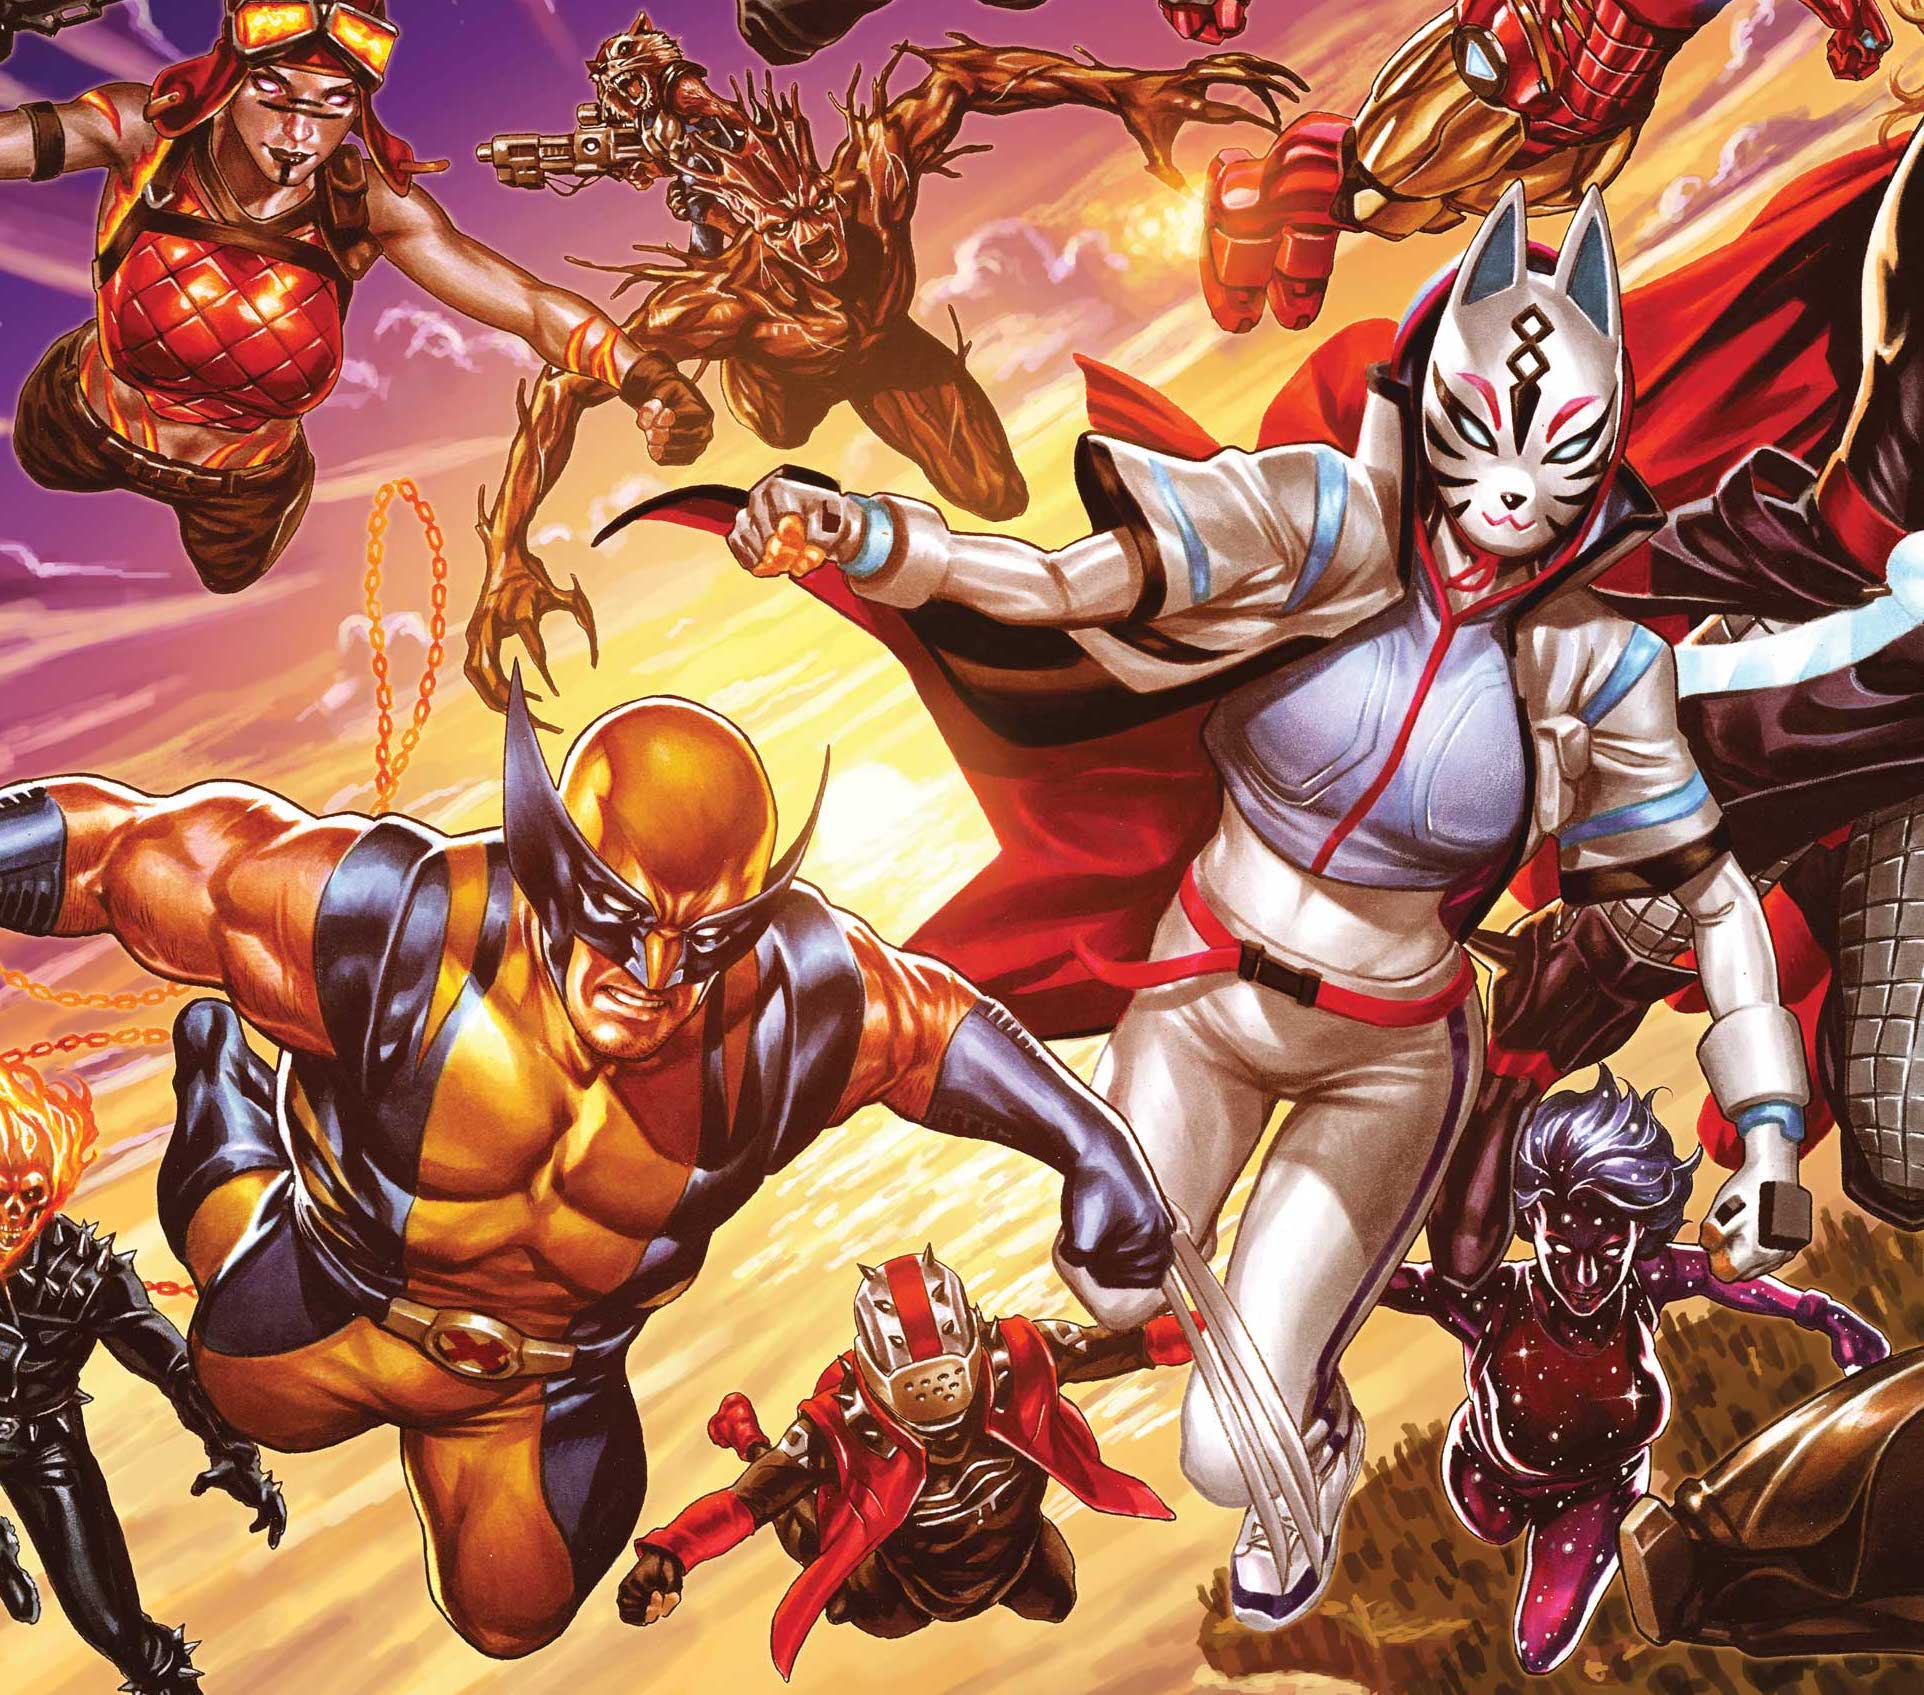 Mark Brooks dazzles with 'Avengers' #37 wraparound Fortnite cover